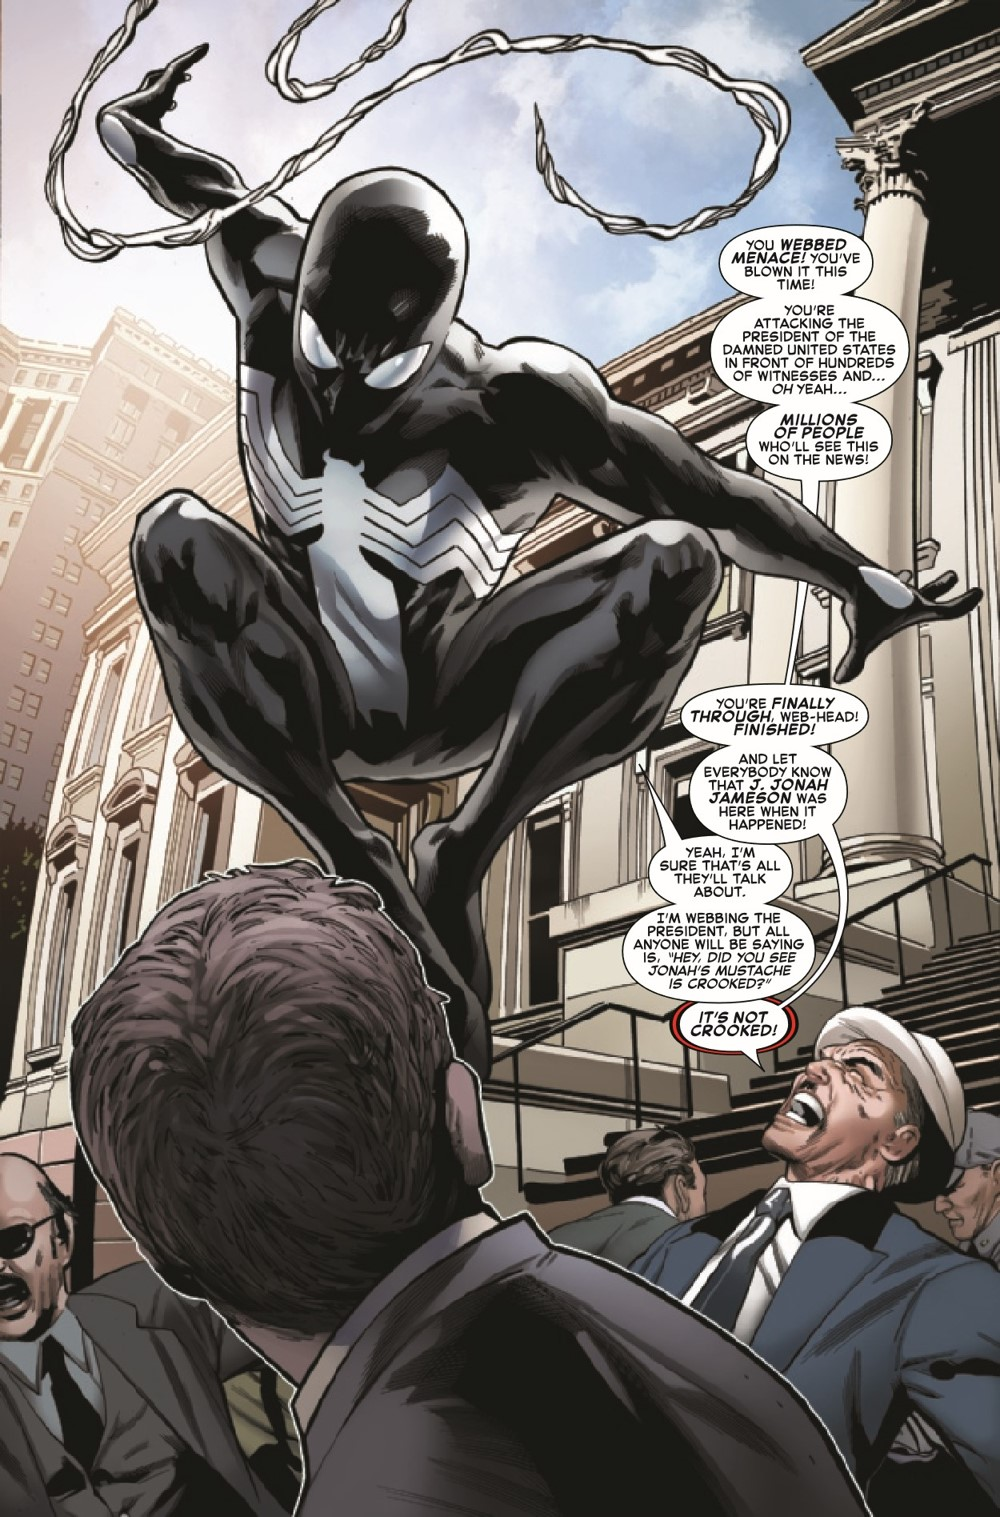 SYMBIOTESMCR2021001_Preview-5 ComicList Previews: SYMBIOTE SPIDER-MAN CROSSROADS #1 (OF 5)